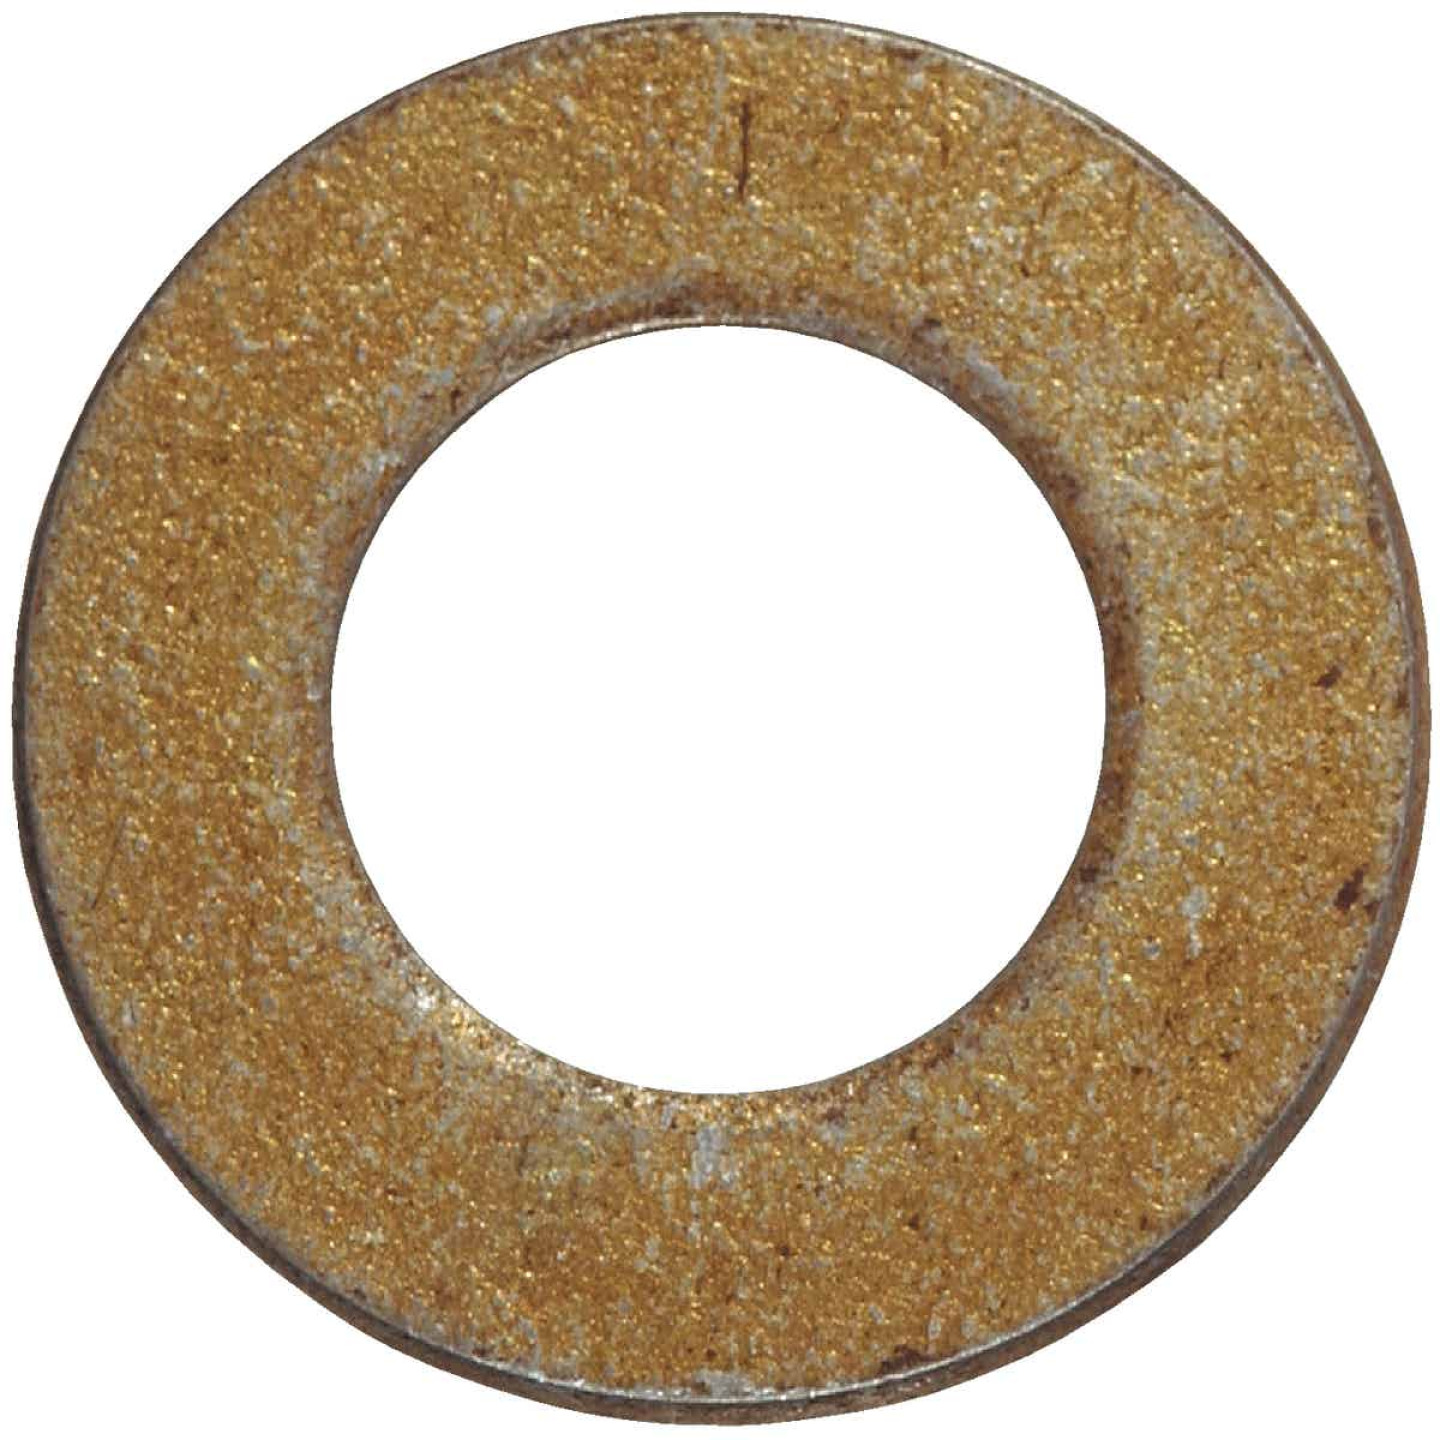 Hillman 1 In. SAE Hardened Steel Yellow Dichromate Flat Washer (10 Ct.) Image 1